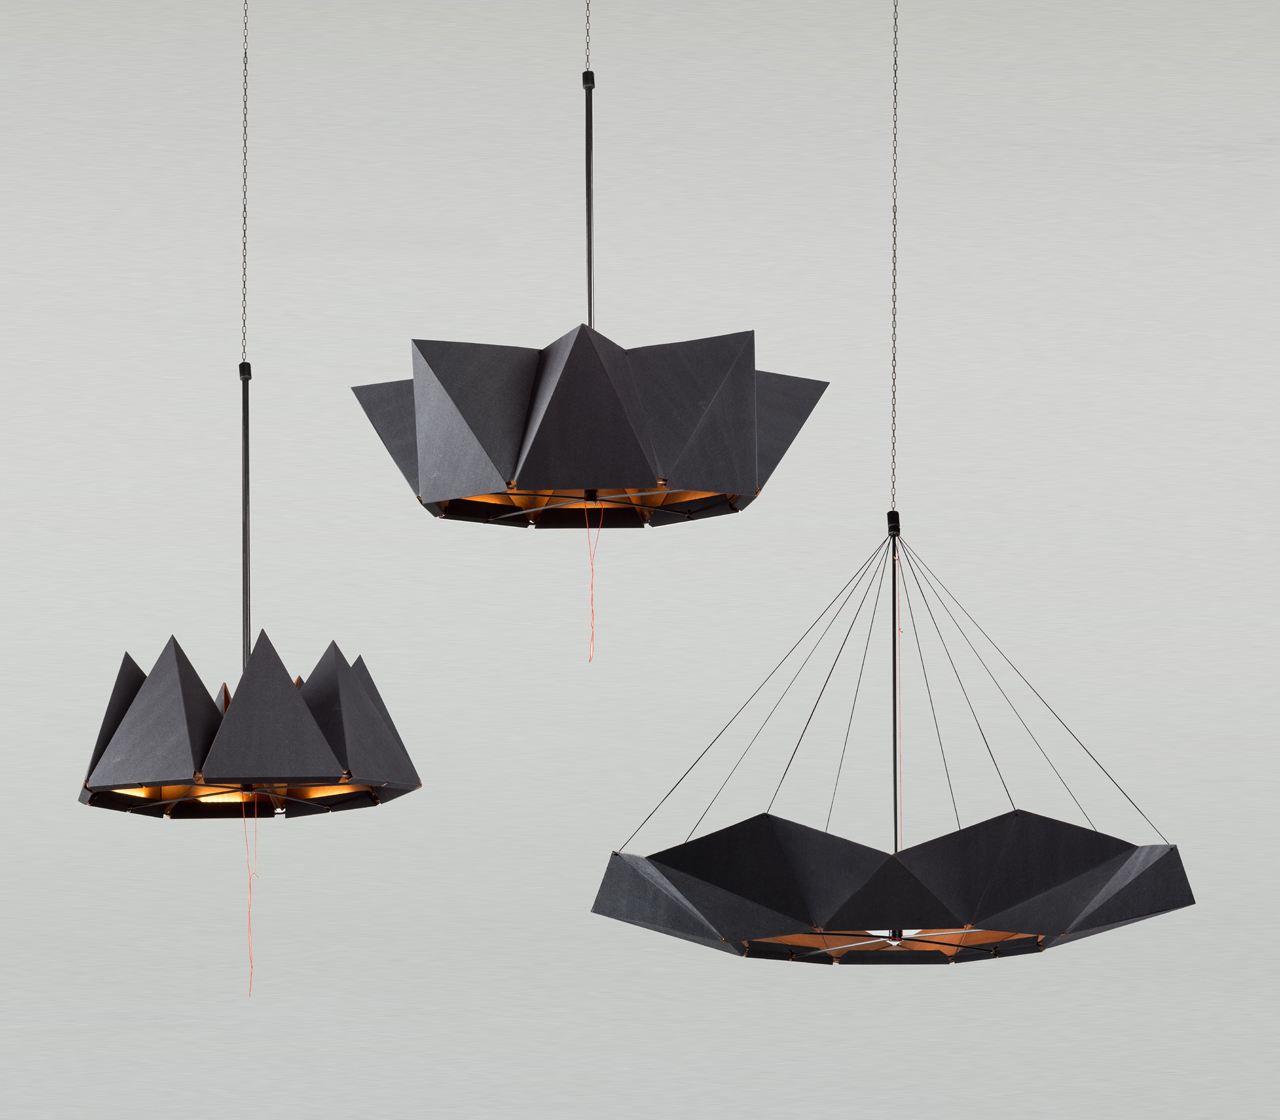 An Adjustable Moving Lamp Inspired by Movements in Nature